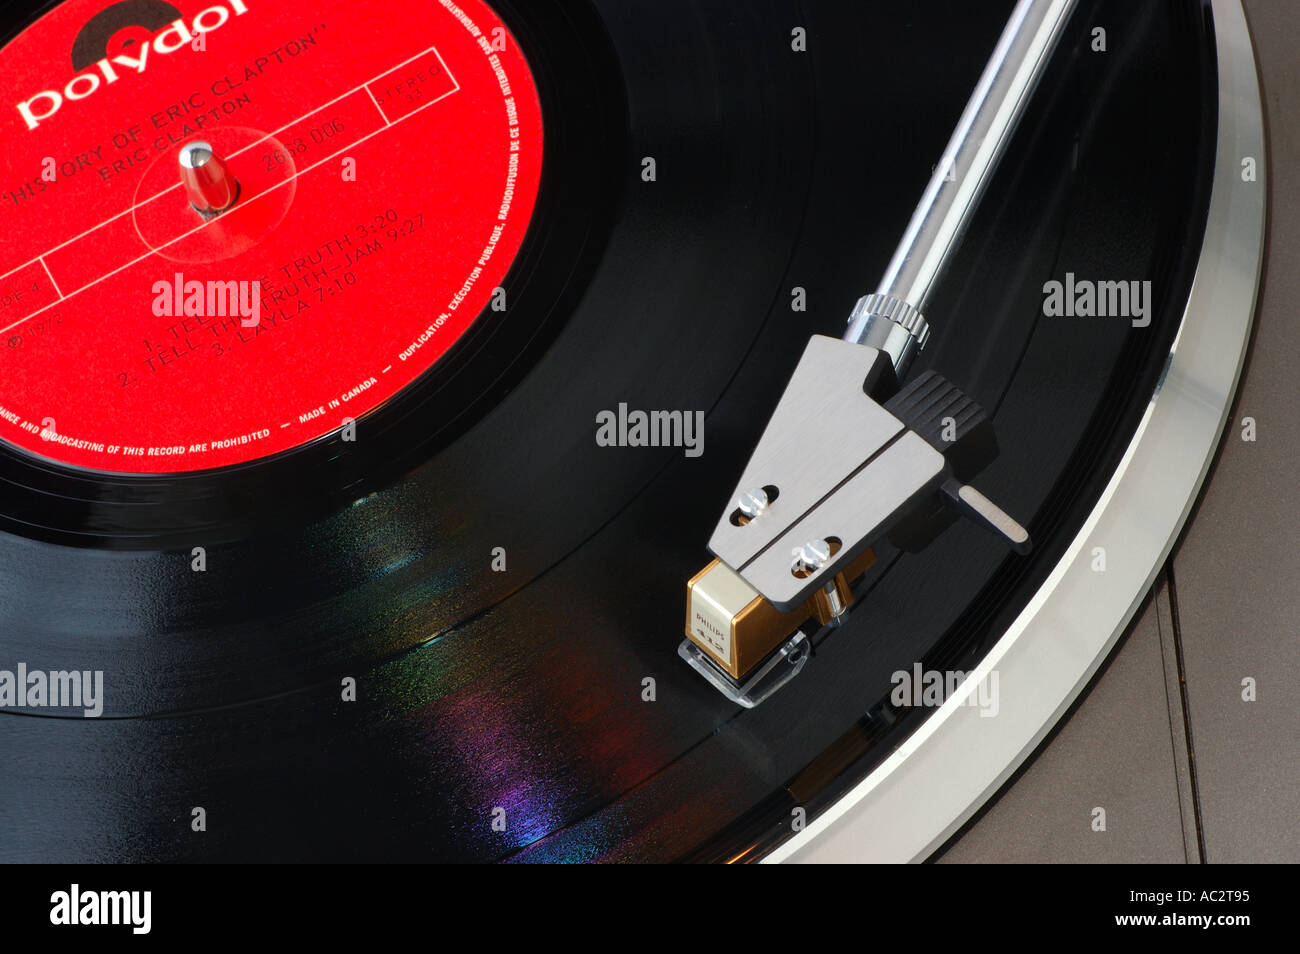 LP vinyl music record spinning on the turntable - Stock Image